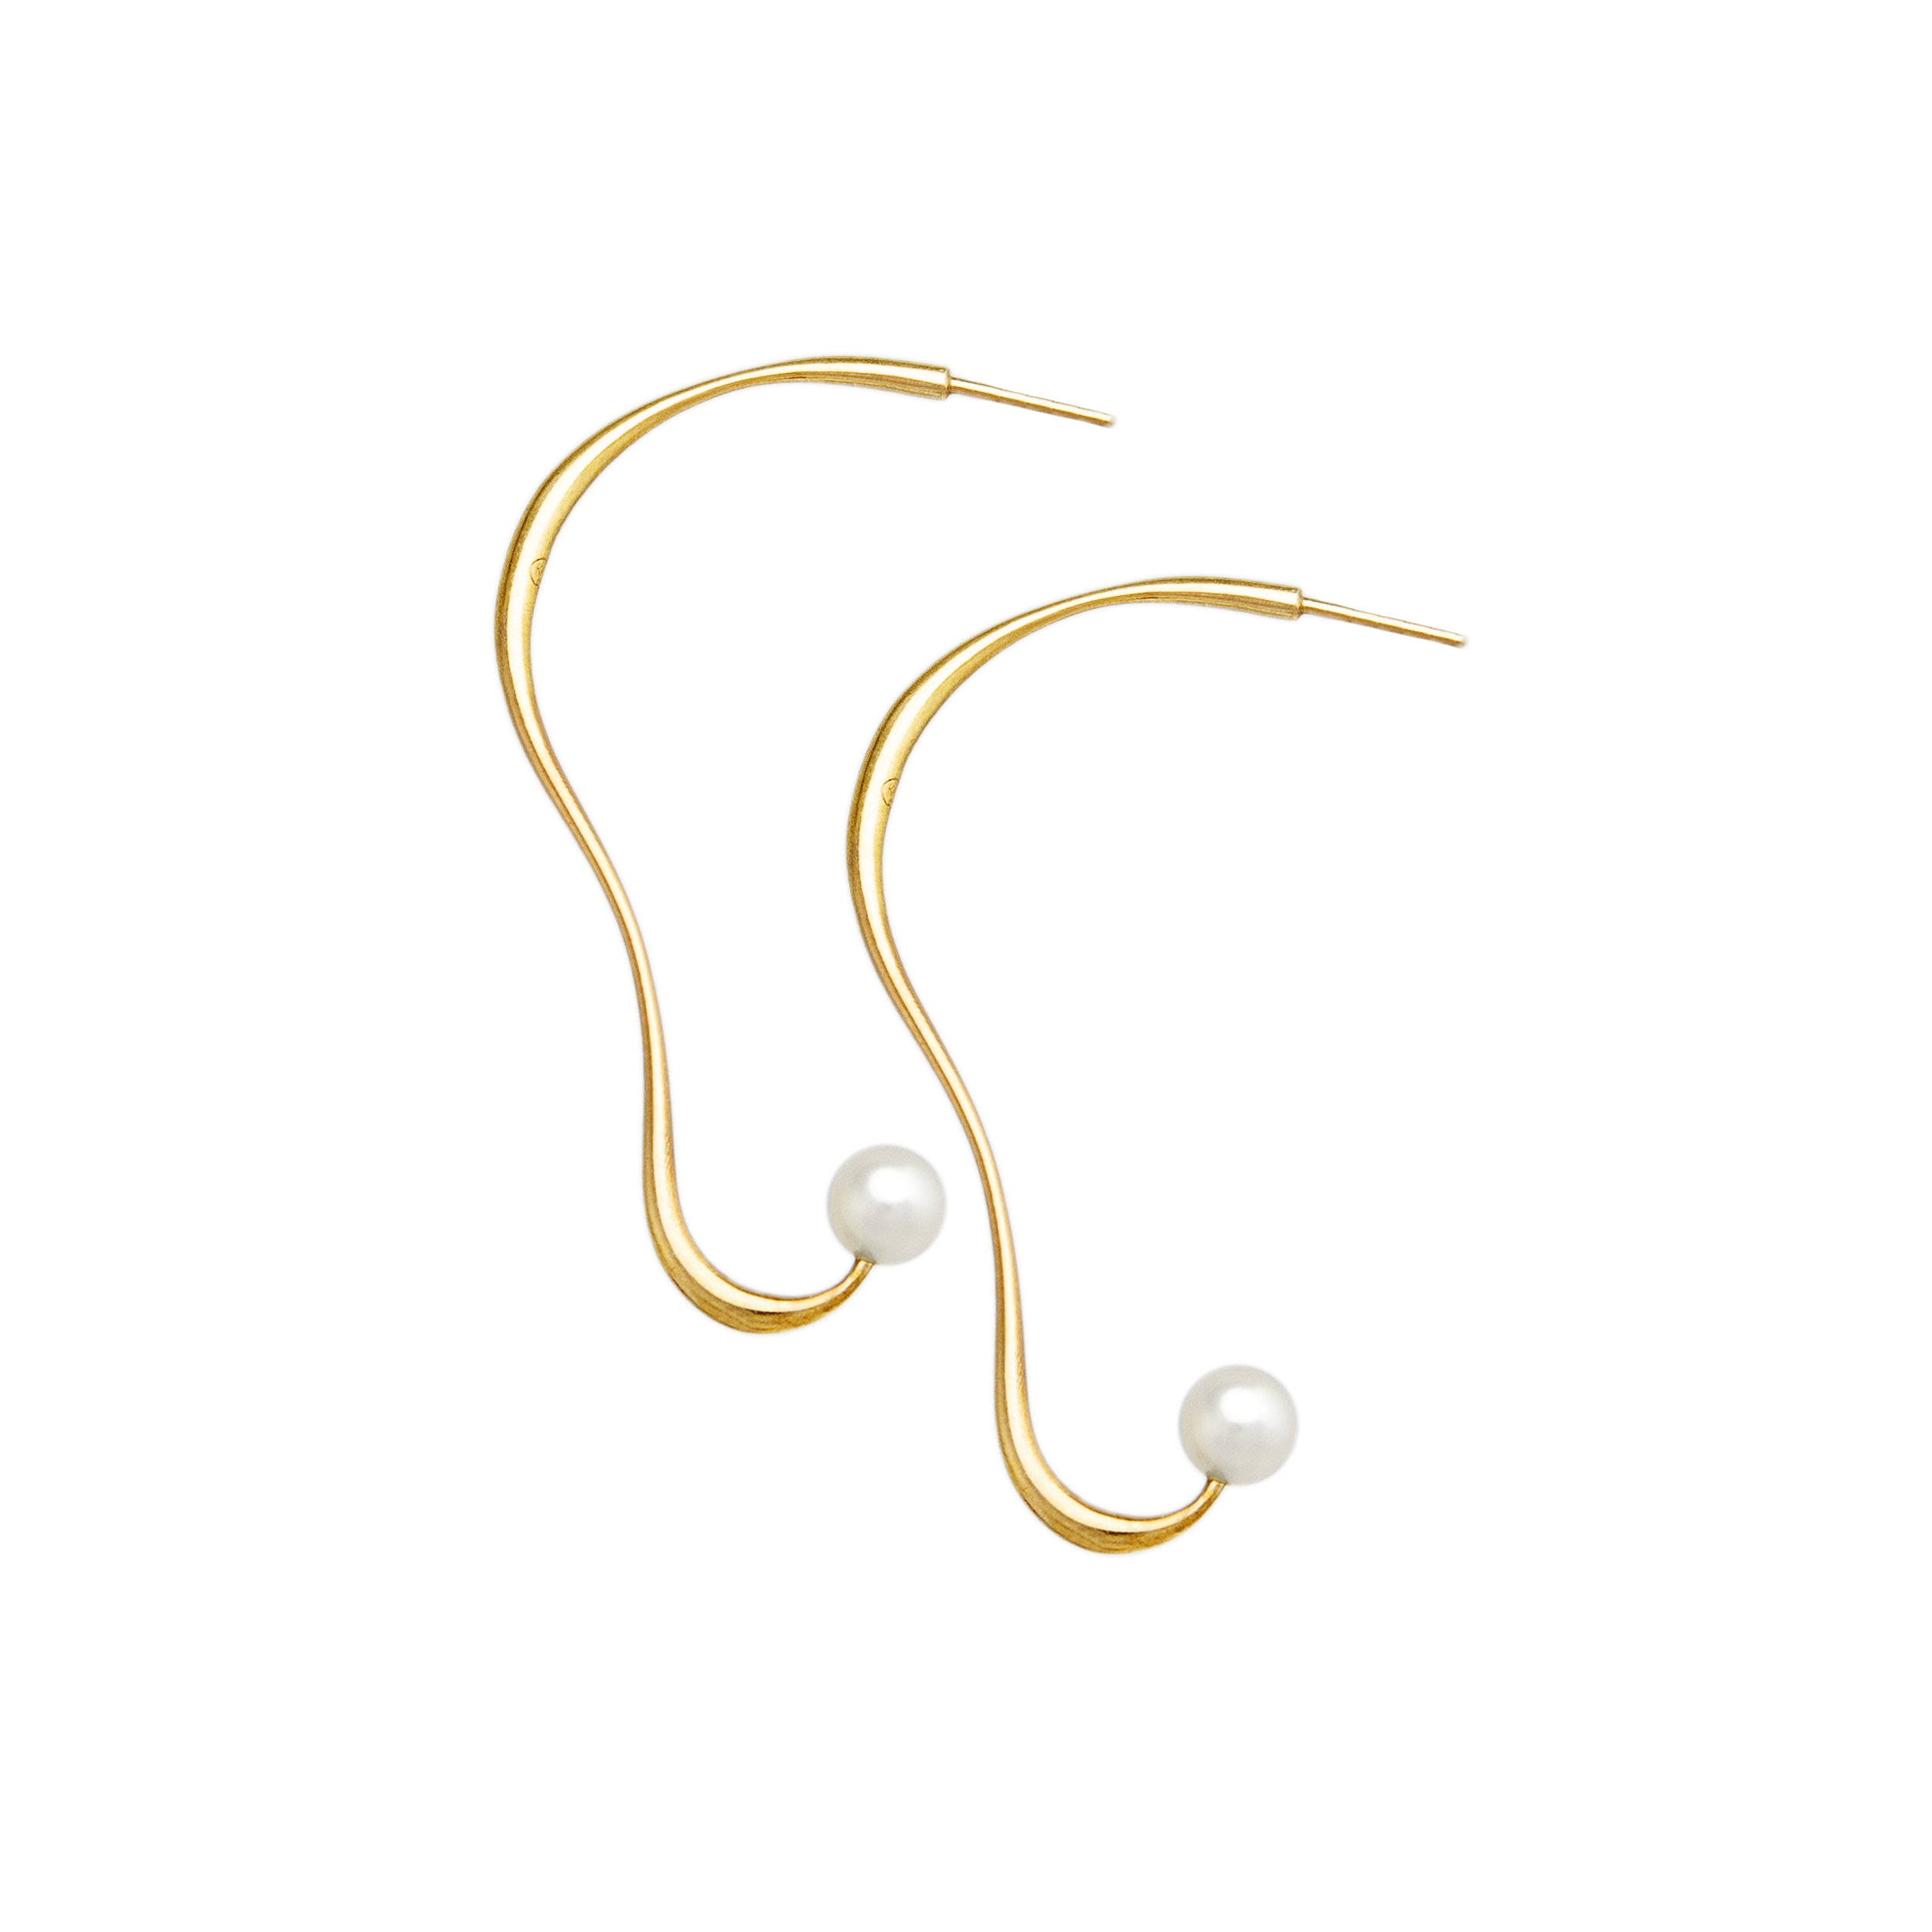 kozminka-fine-senses-sound-earrings.jpg